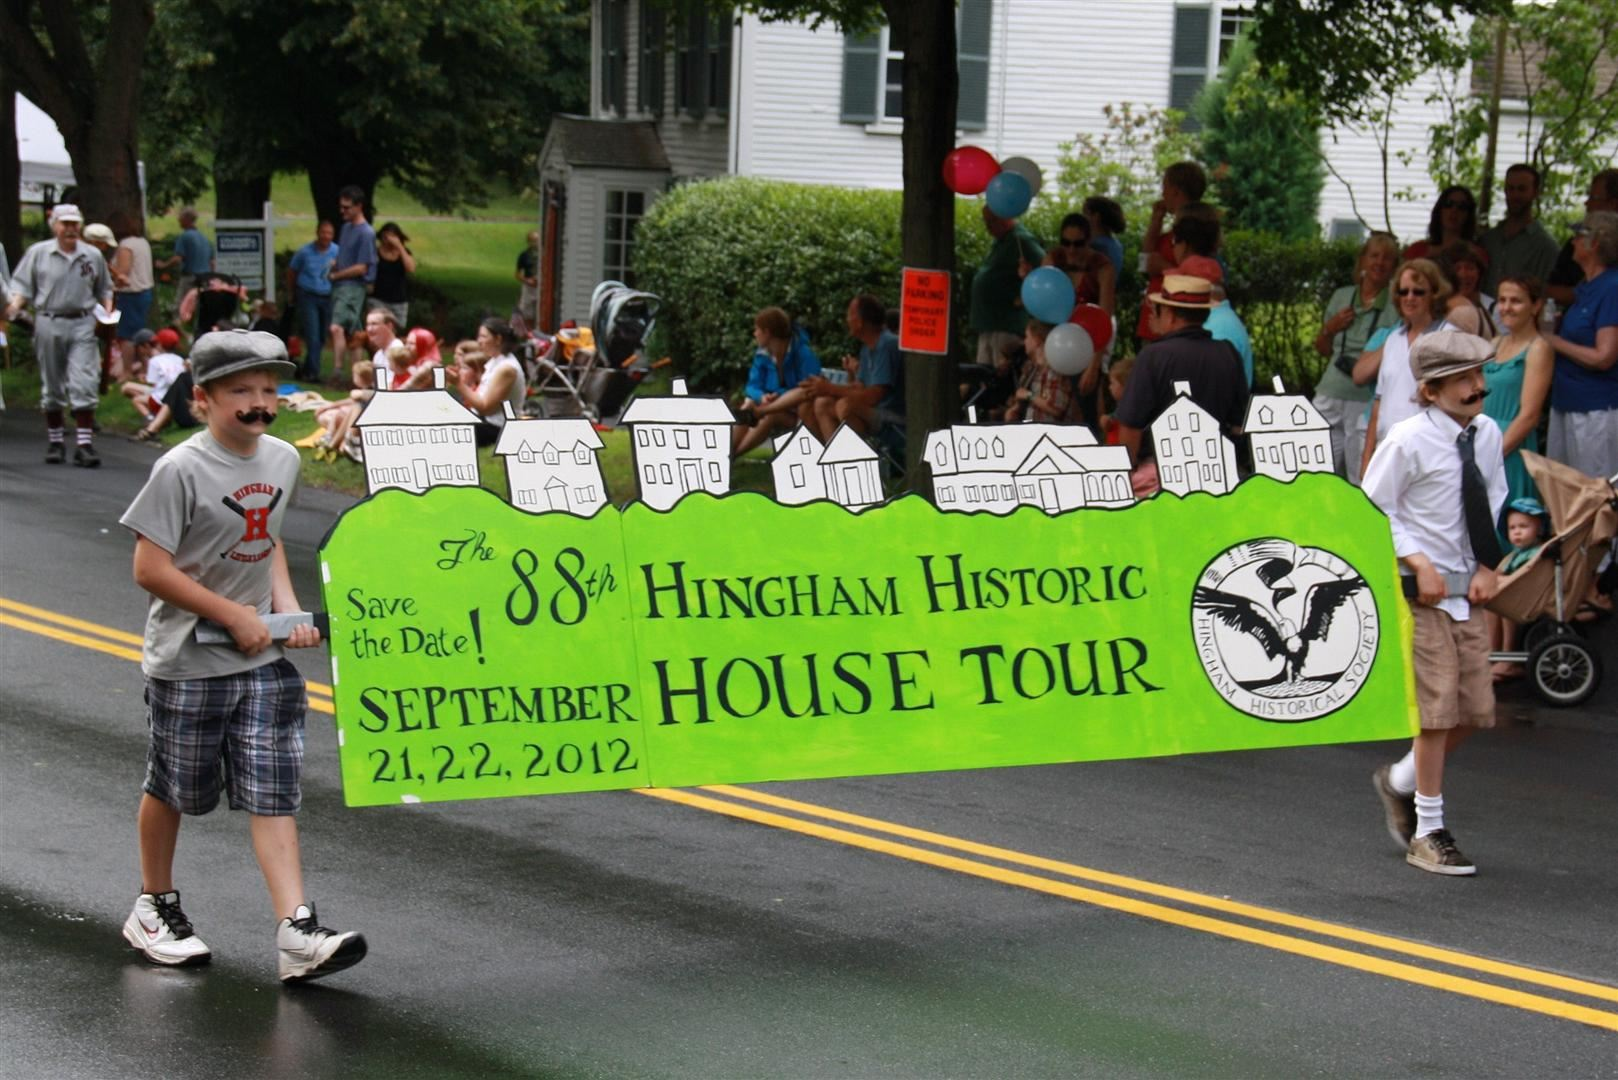 88th Hingham Historic House Tour